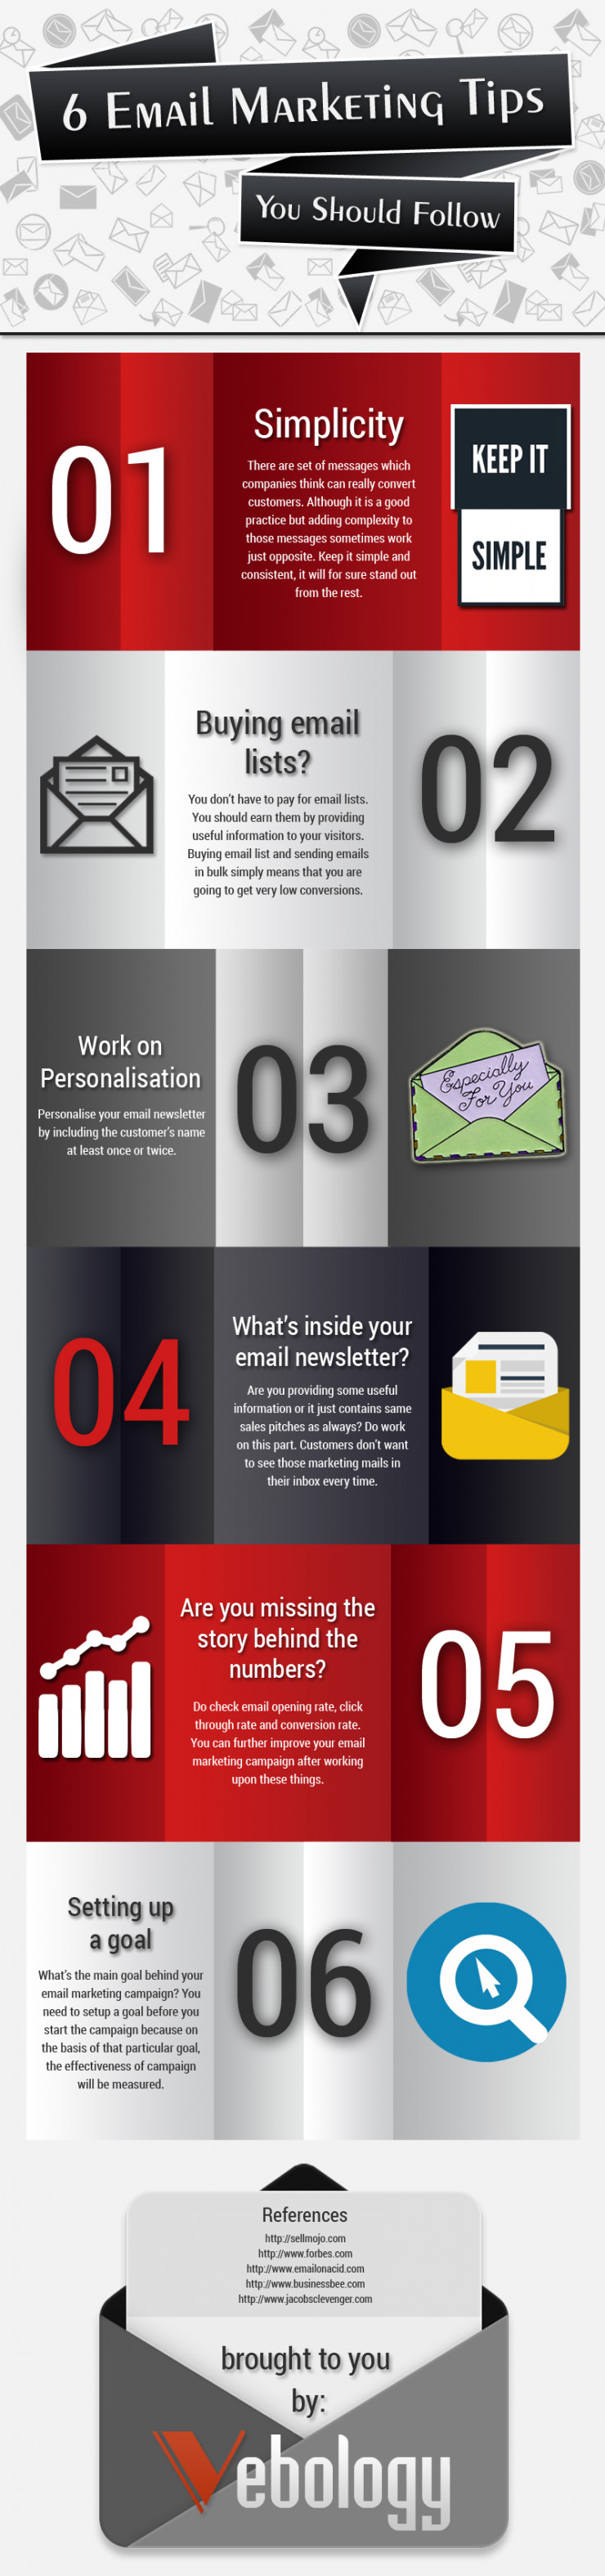 6 Email Marketing Tips You Should Follow [Infographic]